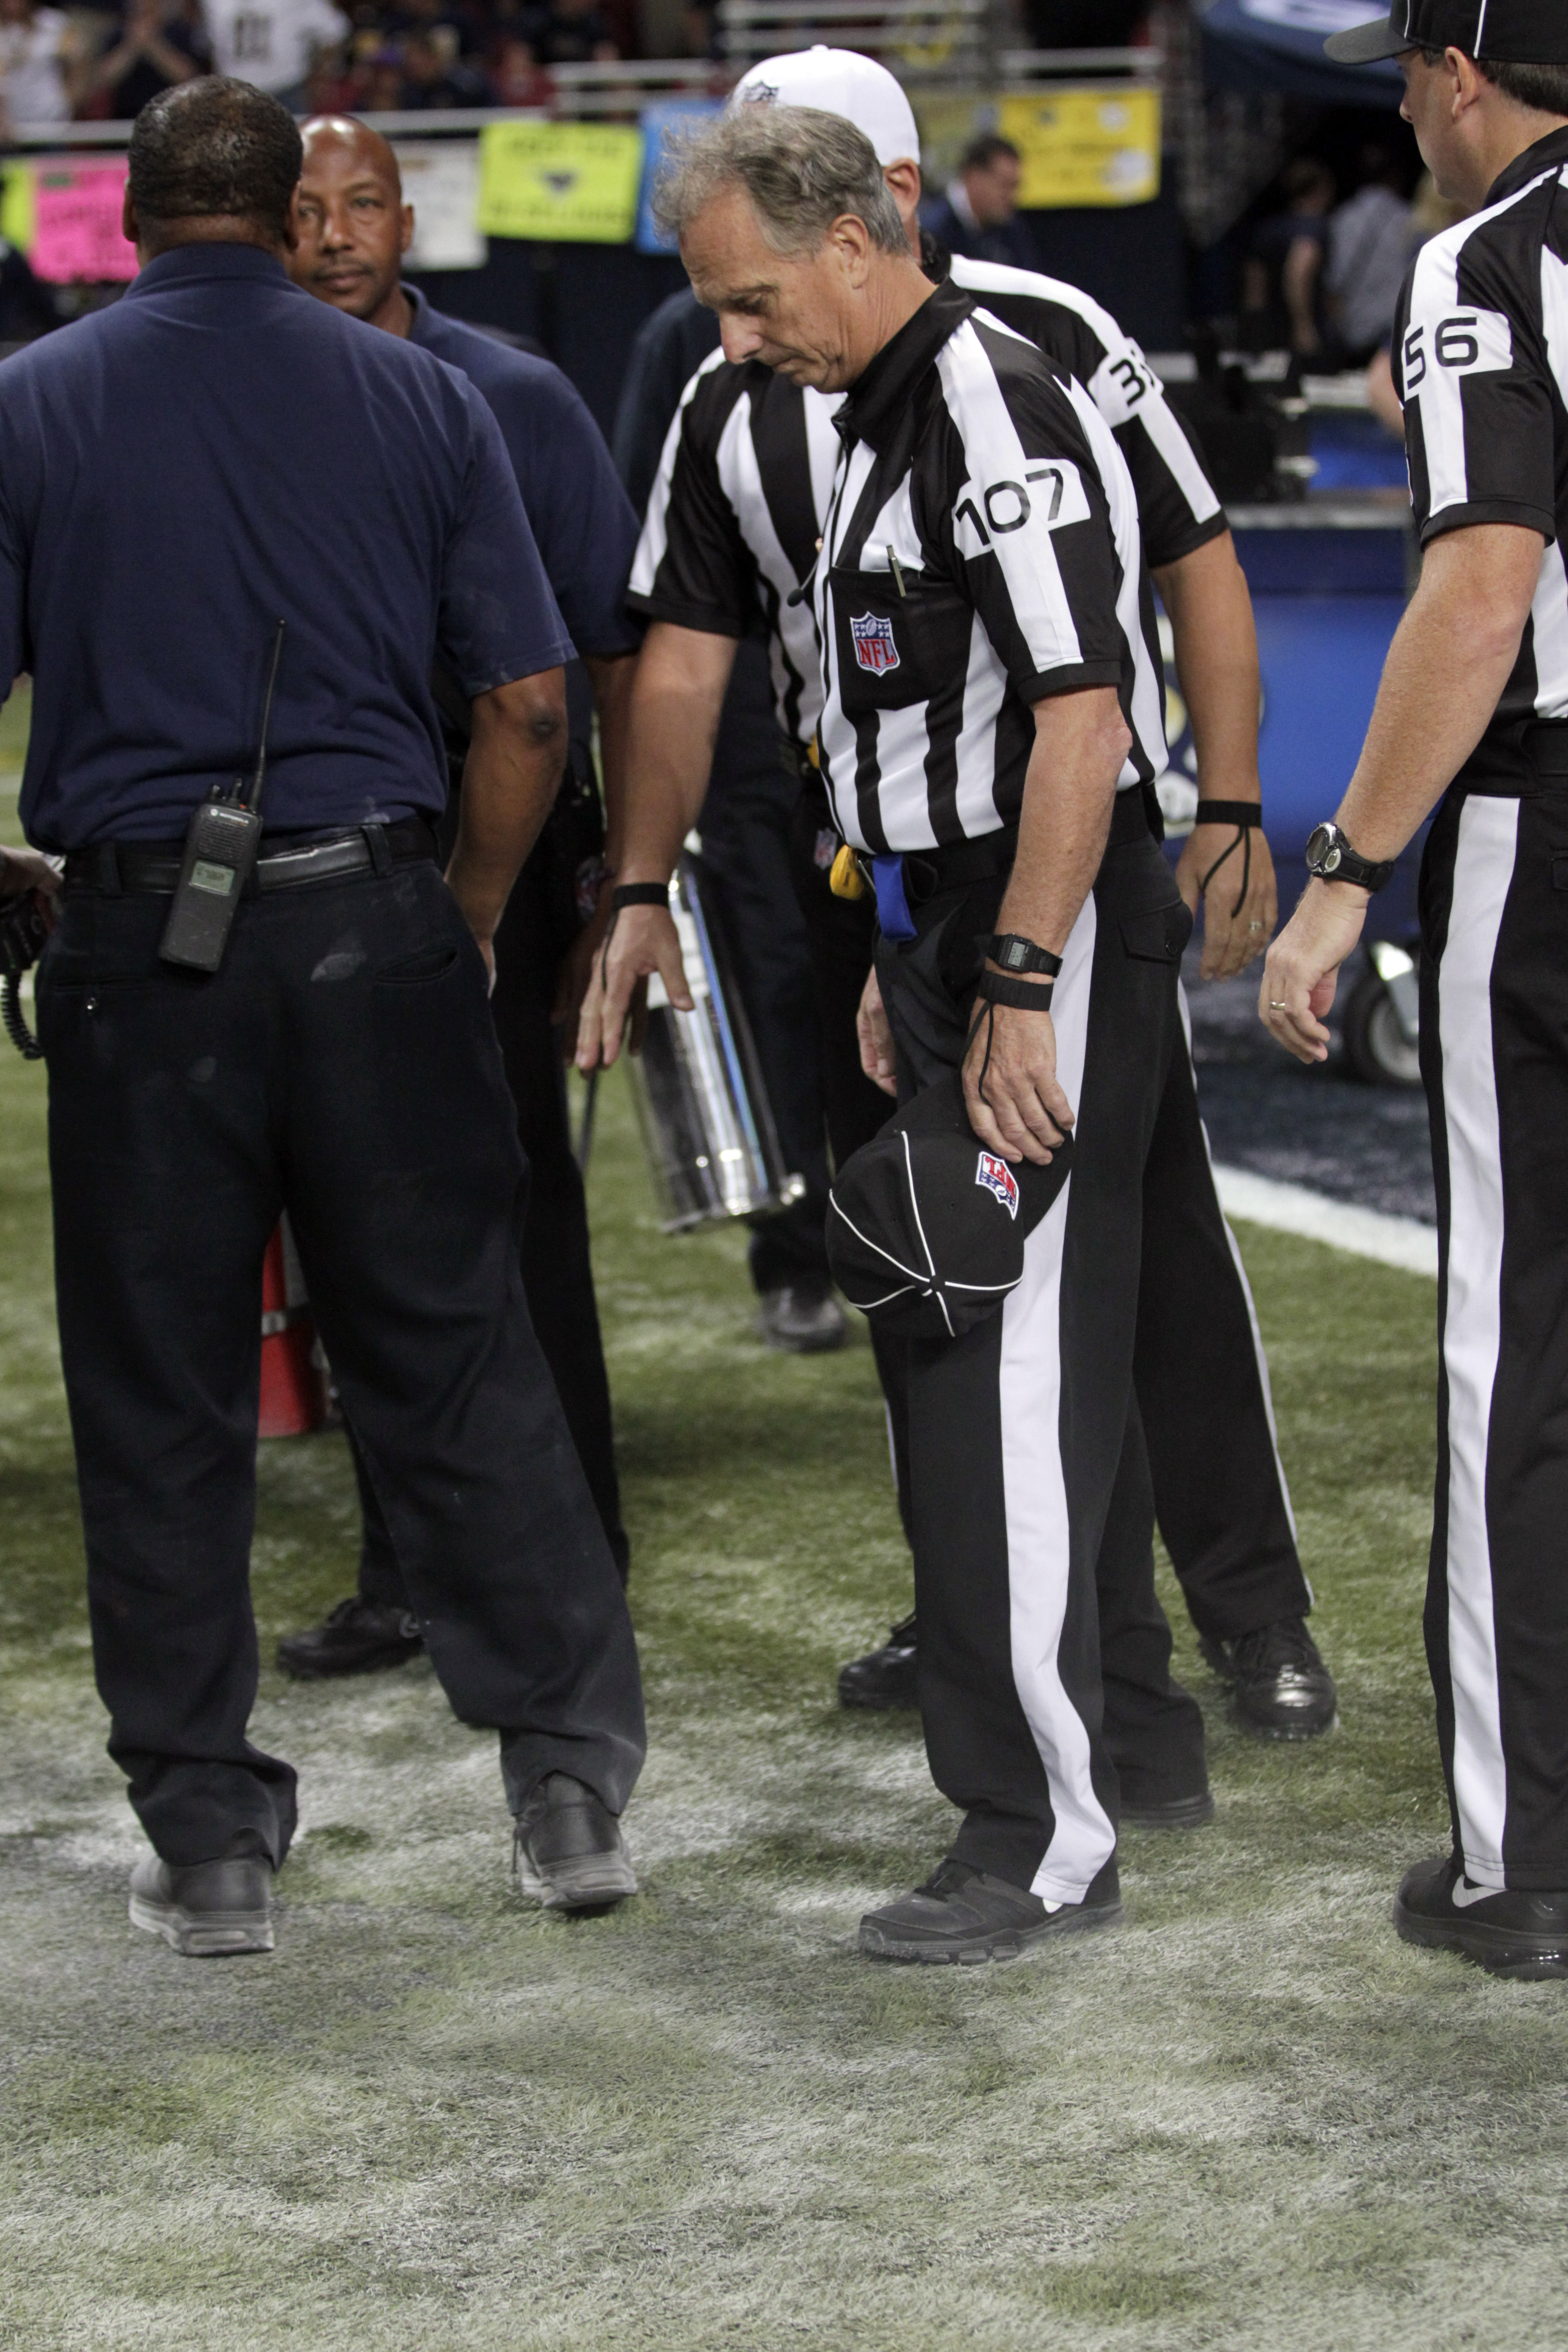 Line judge Ron Marinucci looks over a section of charred turf burned during pyrotechnics before an NFL football game between the St. Louis Rams and the Pittsburgh Steelers, Sunday, Sept. 27, 2015, in St. Louis. (AP Photo/Tom Gannam)